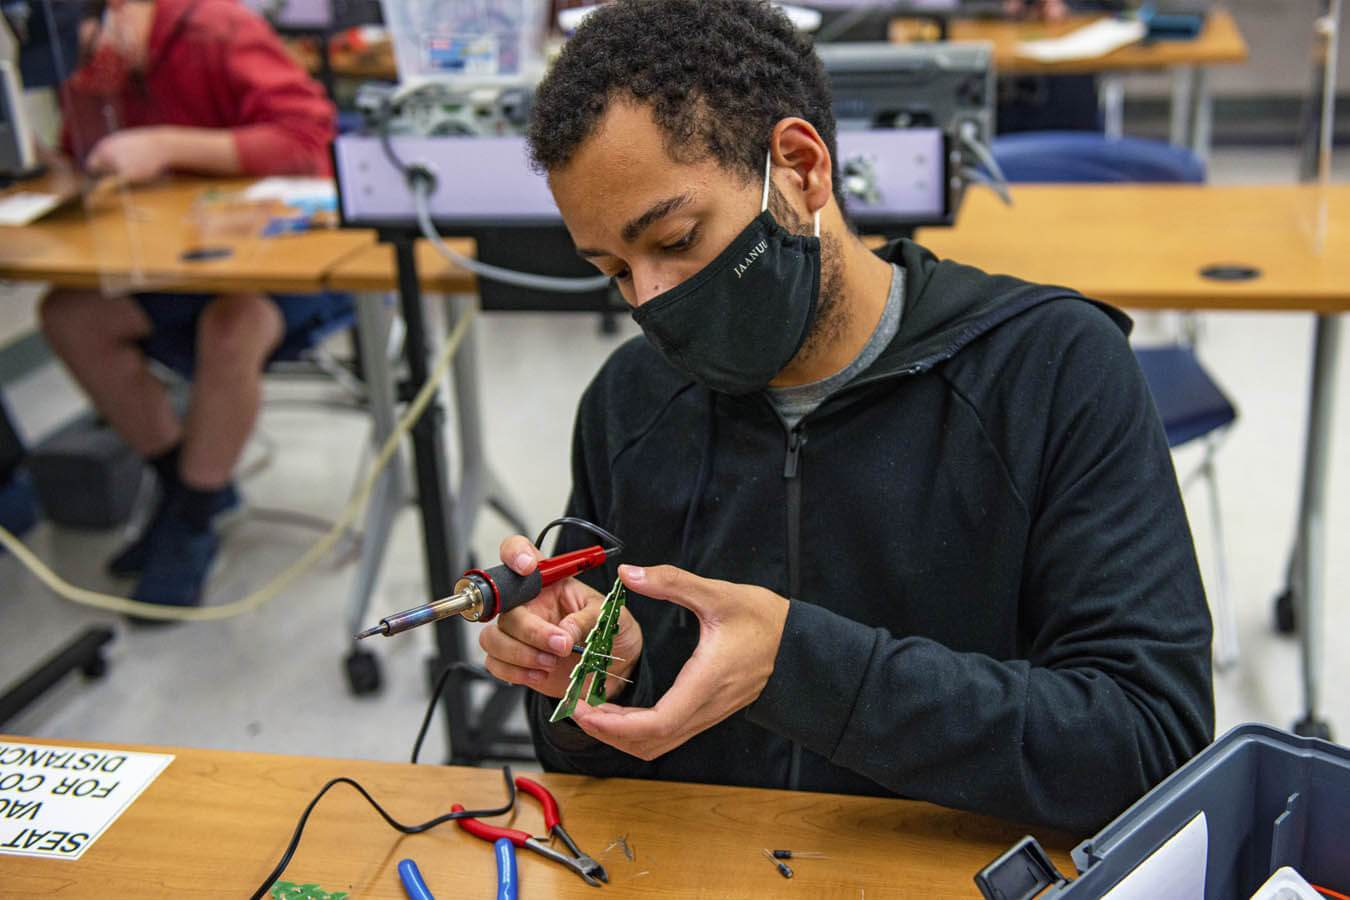 A student gets hands-on experience in Jude Pearse's electrical engineering technology lab.